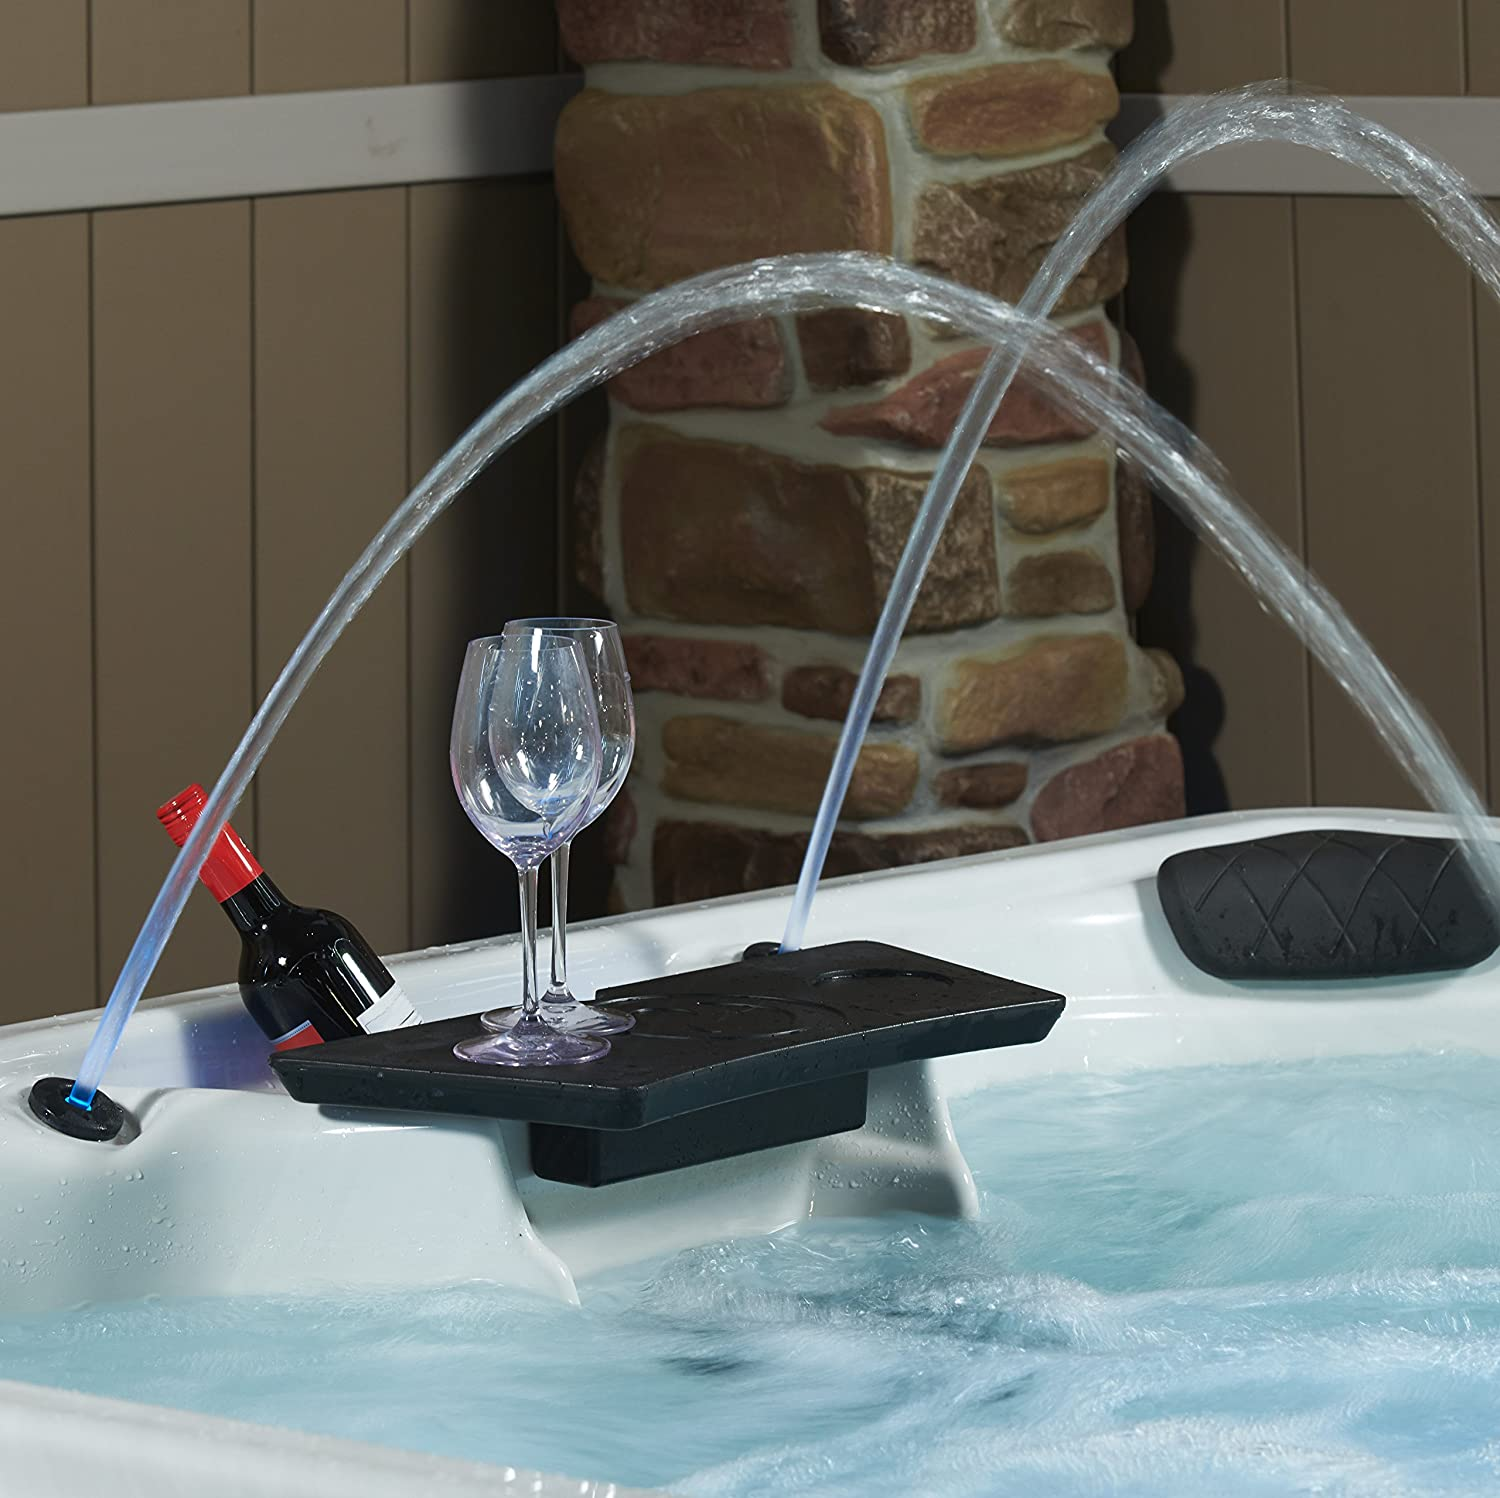 Essential-Hot-Tubs-30-Jets-Adelaide-Hot-Tub Water Colums Detail